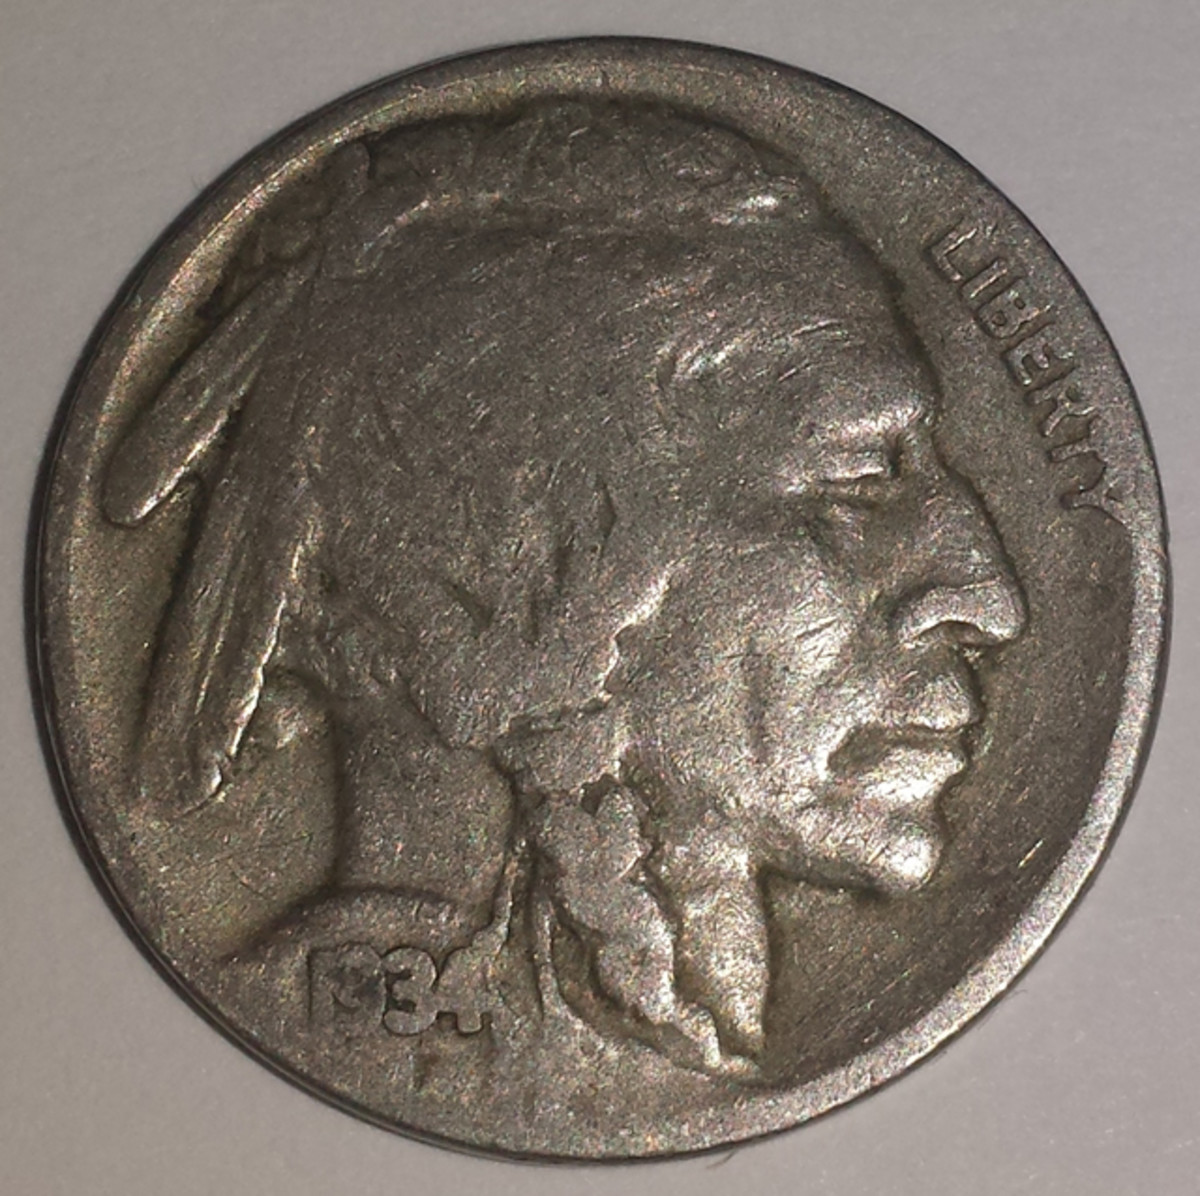 The found 1934 Buffalo nickel.